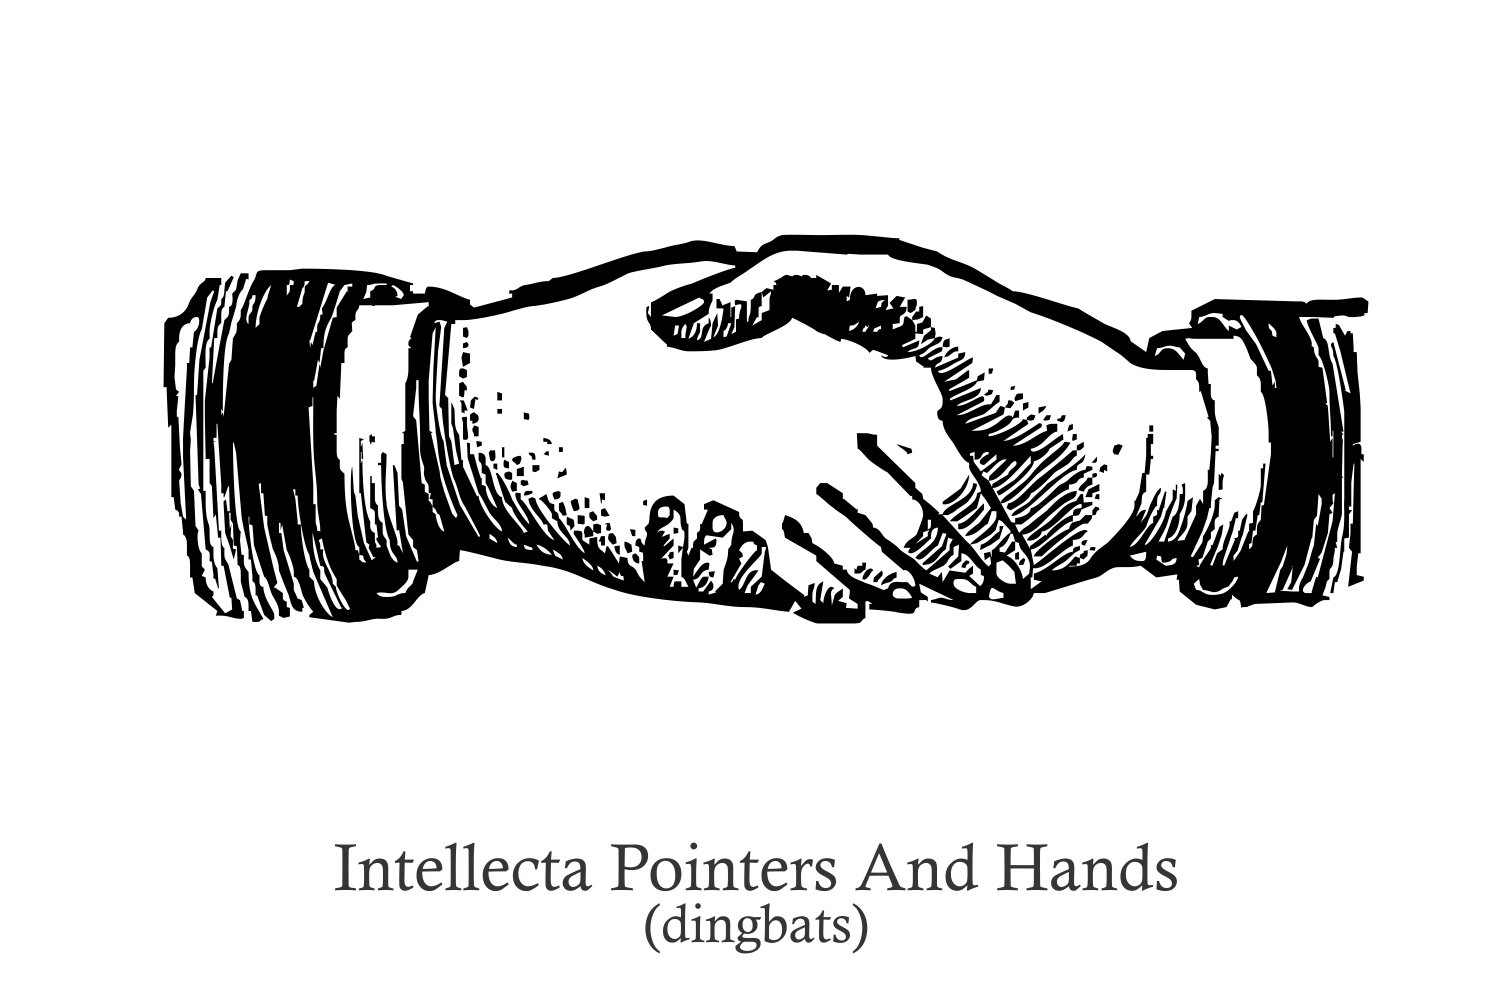 Intellecta Pointers And Hands example image 2